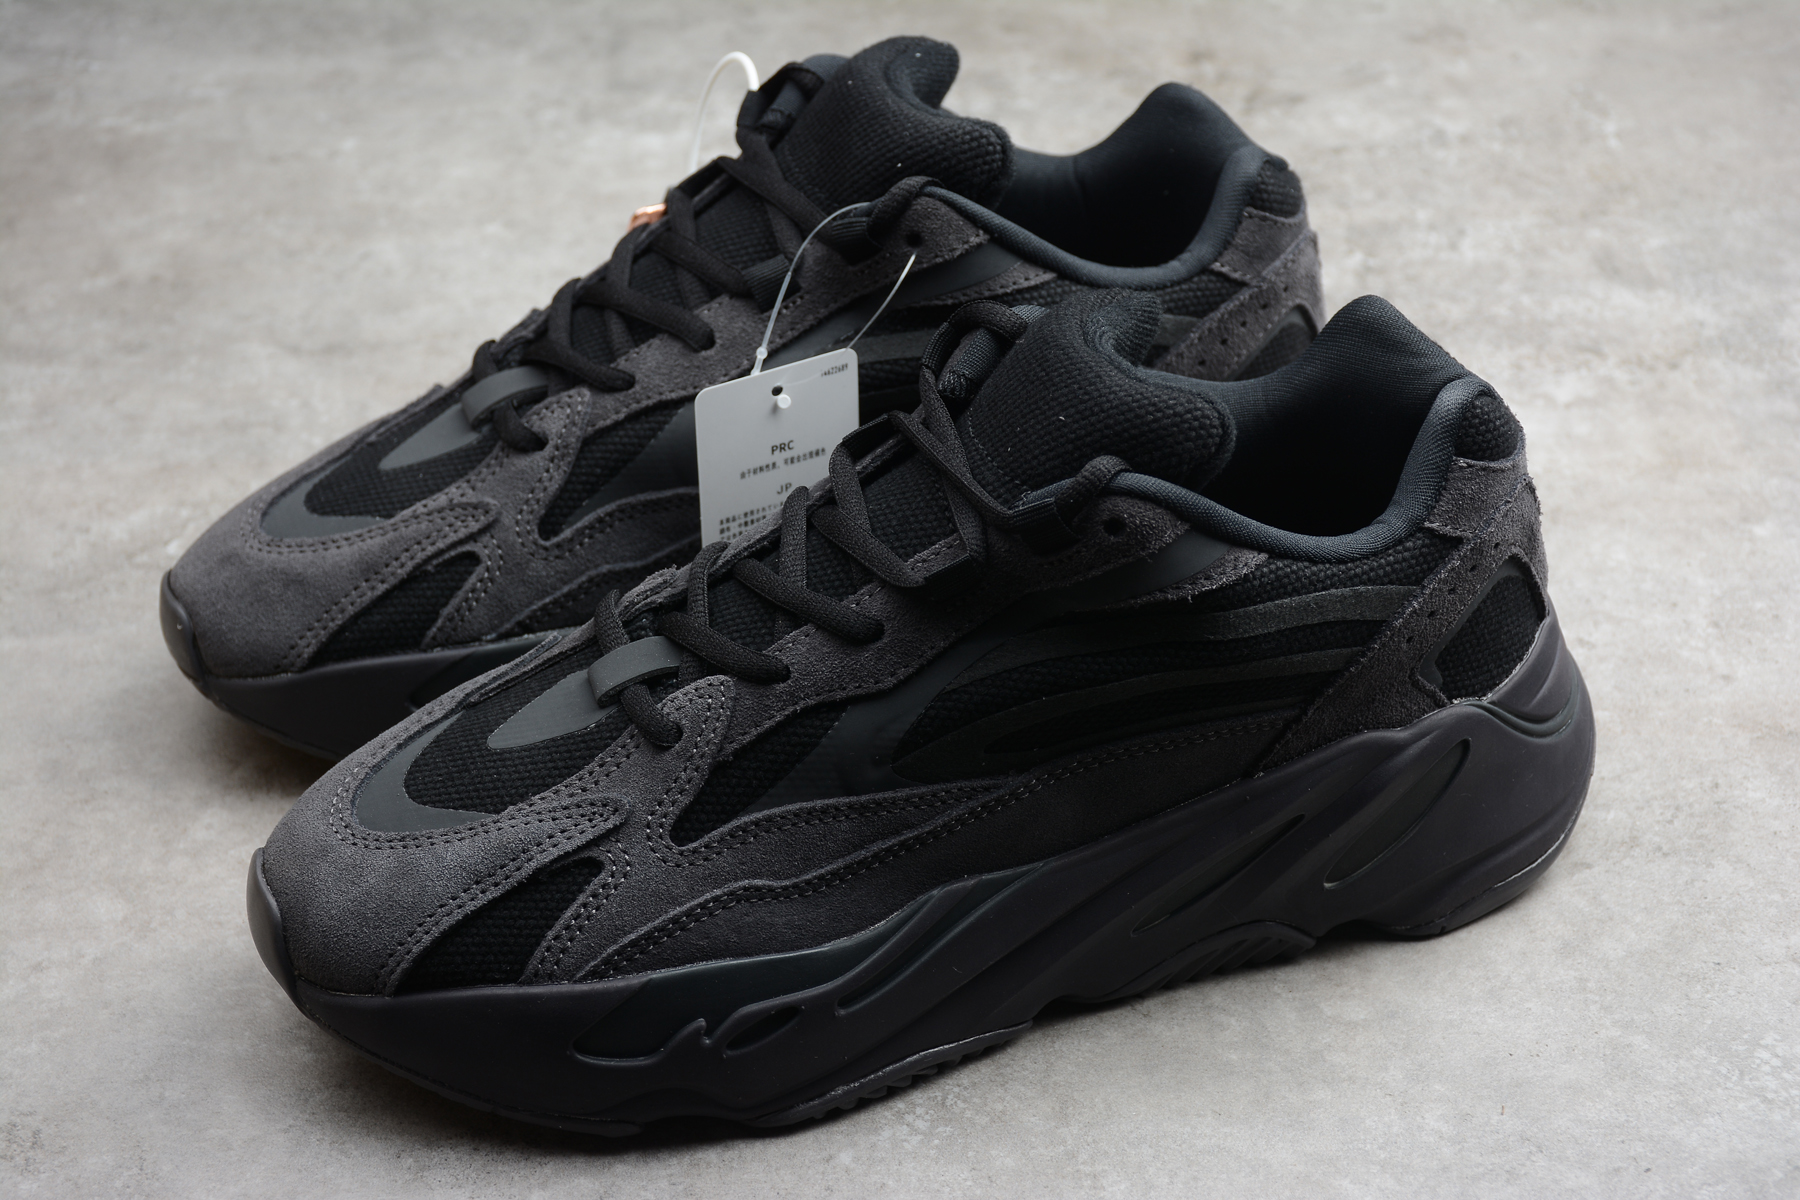 sports shoes a4d2d de7f4 Adidas Yeezy Boost 700 V2 Black/Grey Shoes sold by ivicente